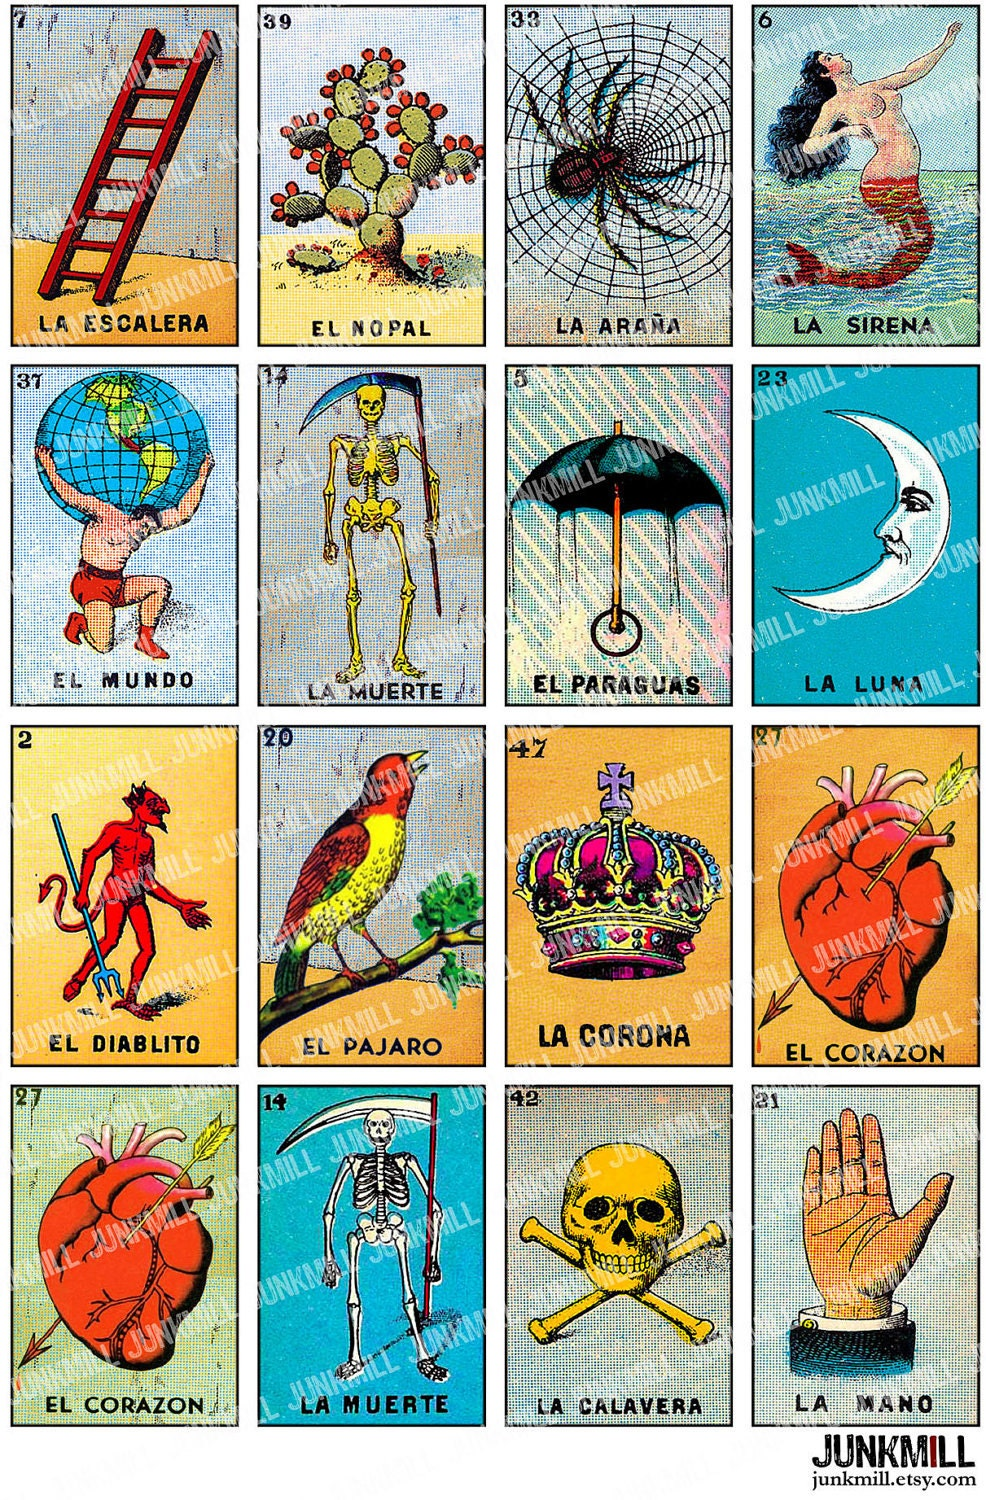 Universal image with regard to loteria printable